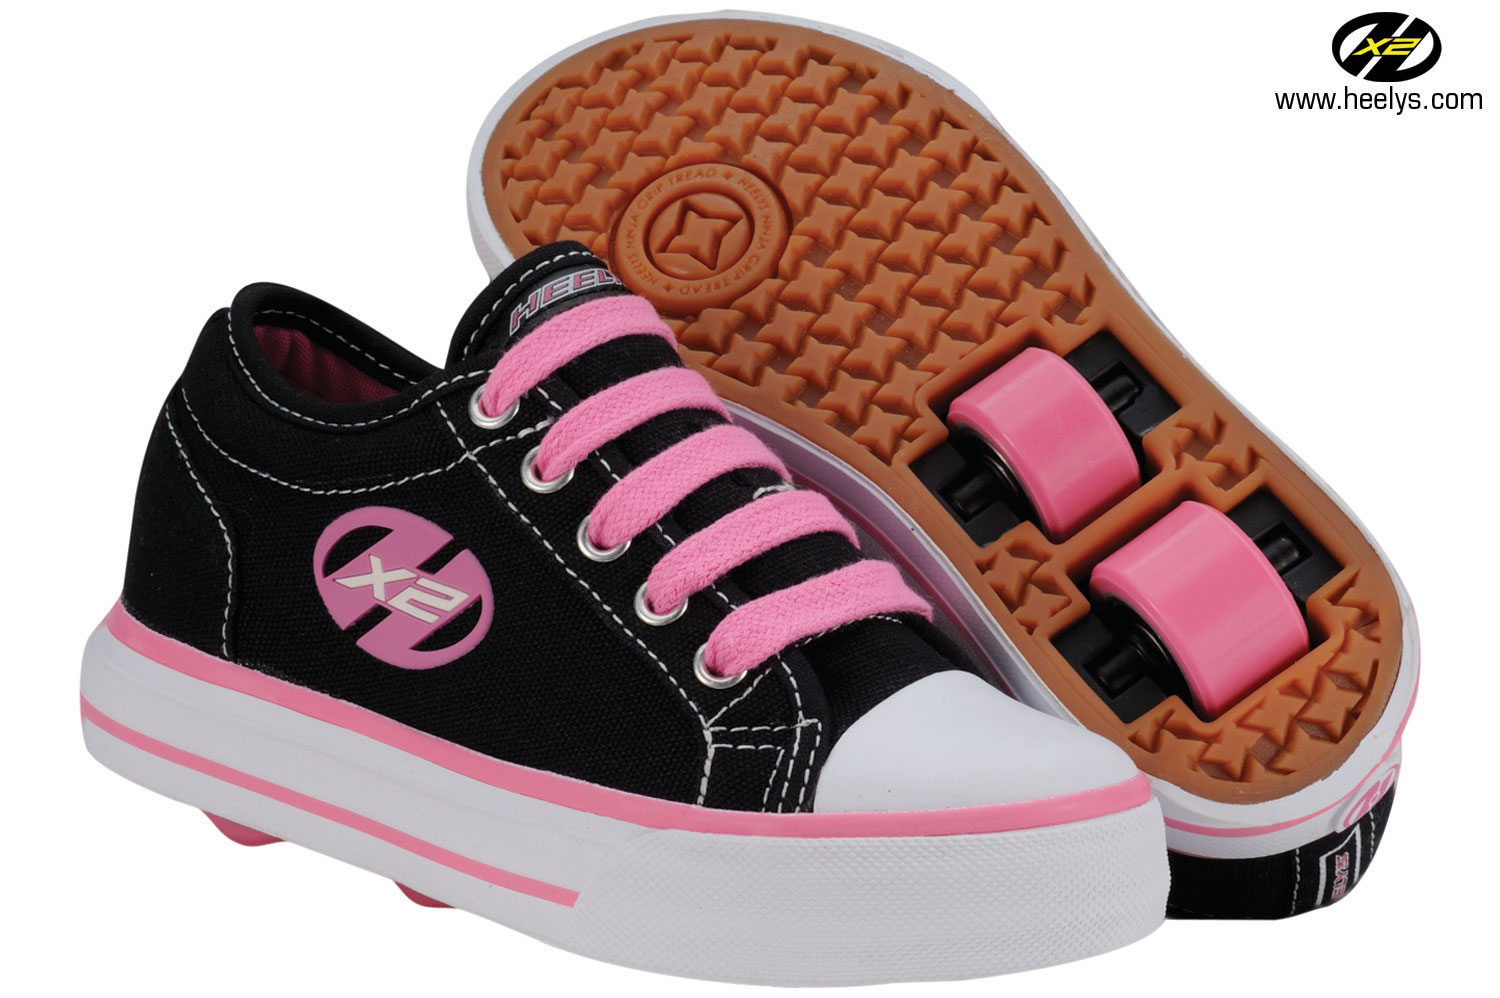 Heely skate shoes reviews - Since The Weather Is Not Good Around Her Too Rainy And Cold We Used Our Heelys